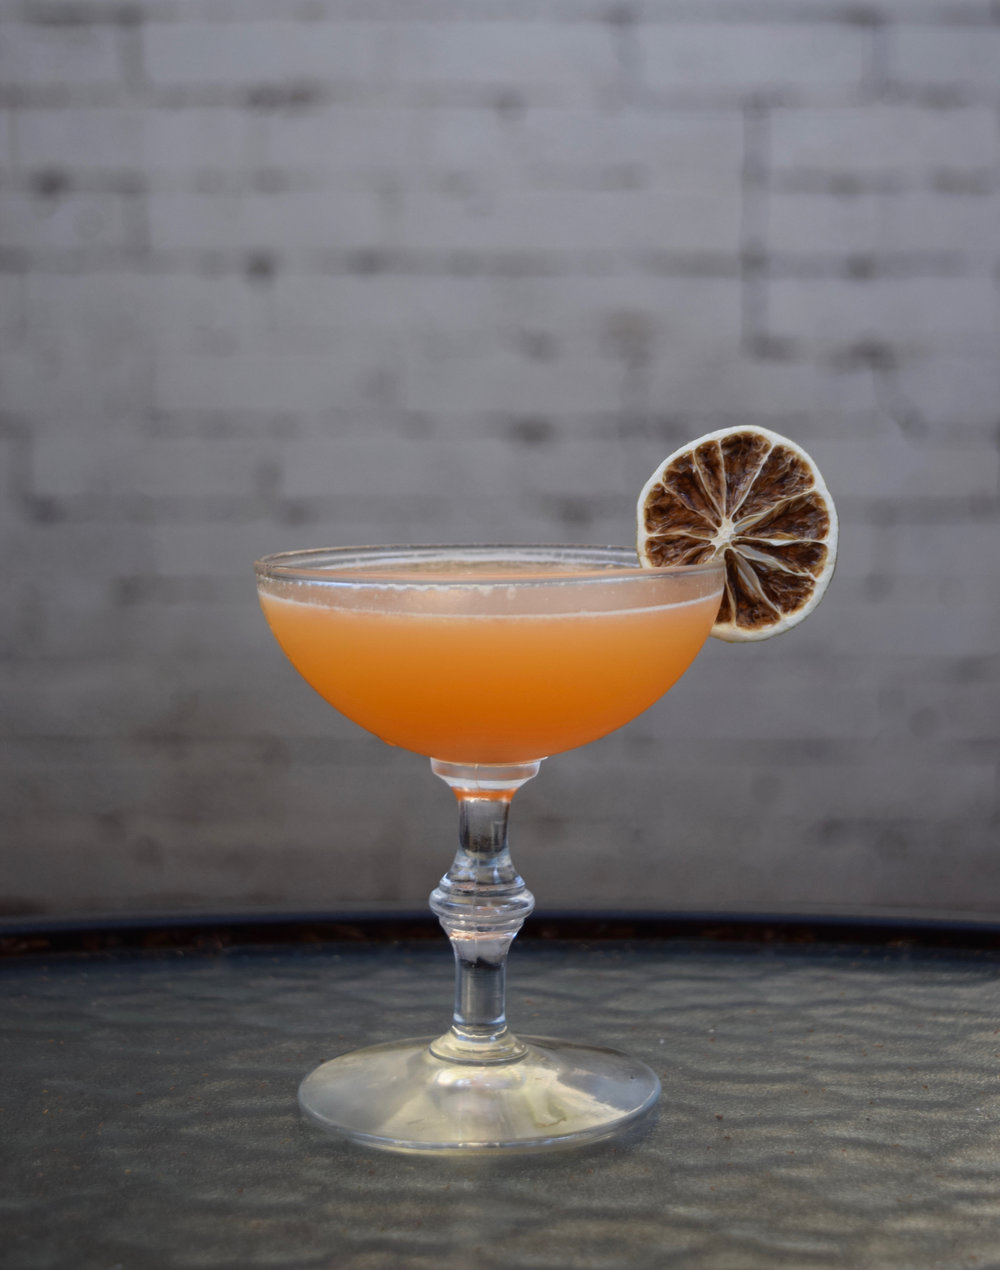 RETROGRADE - 1.5 oz blanco tequila1/2 oz aperol1/2 oz nostrum pineapple turmeric ginger shrub3/4 oz fresh lime juiceShake with ice and strain.